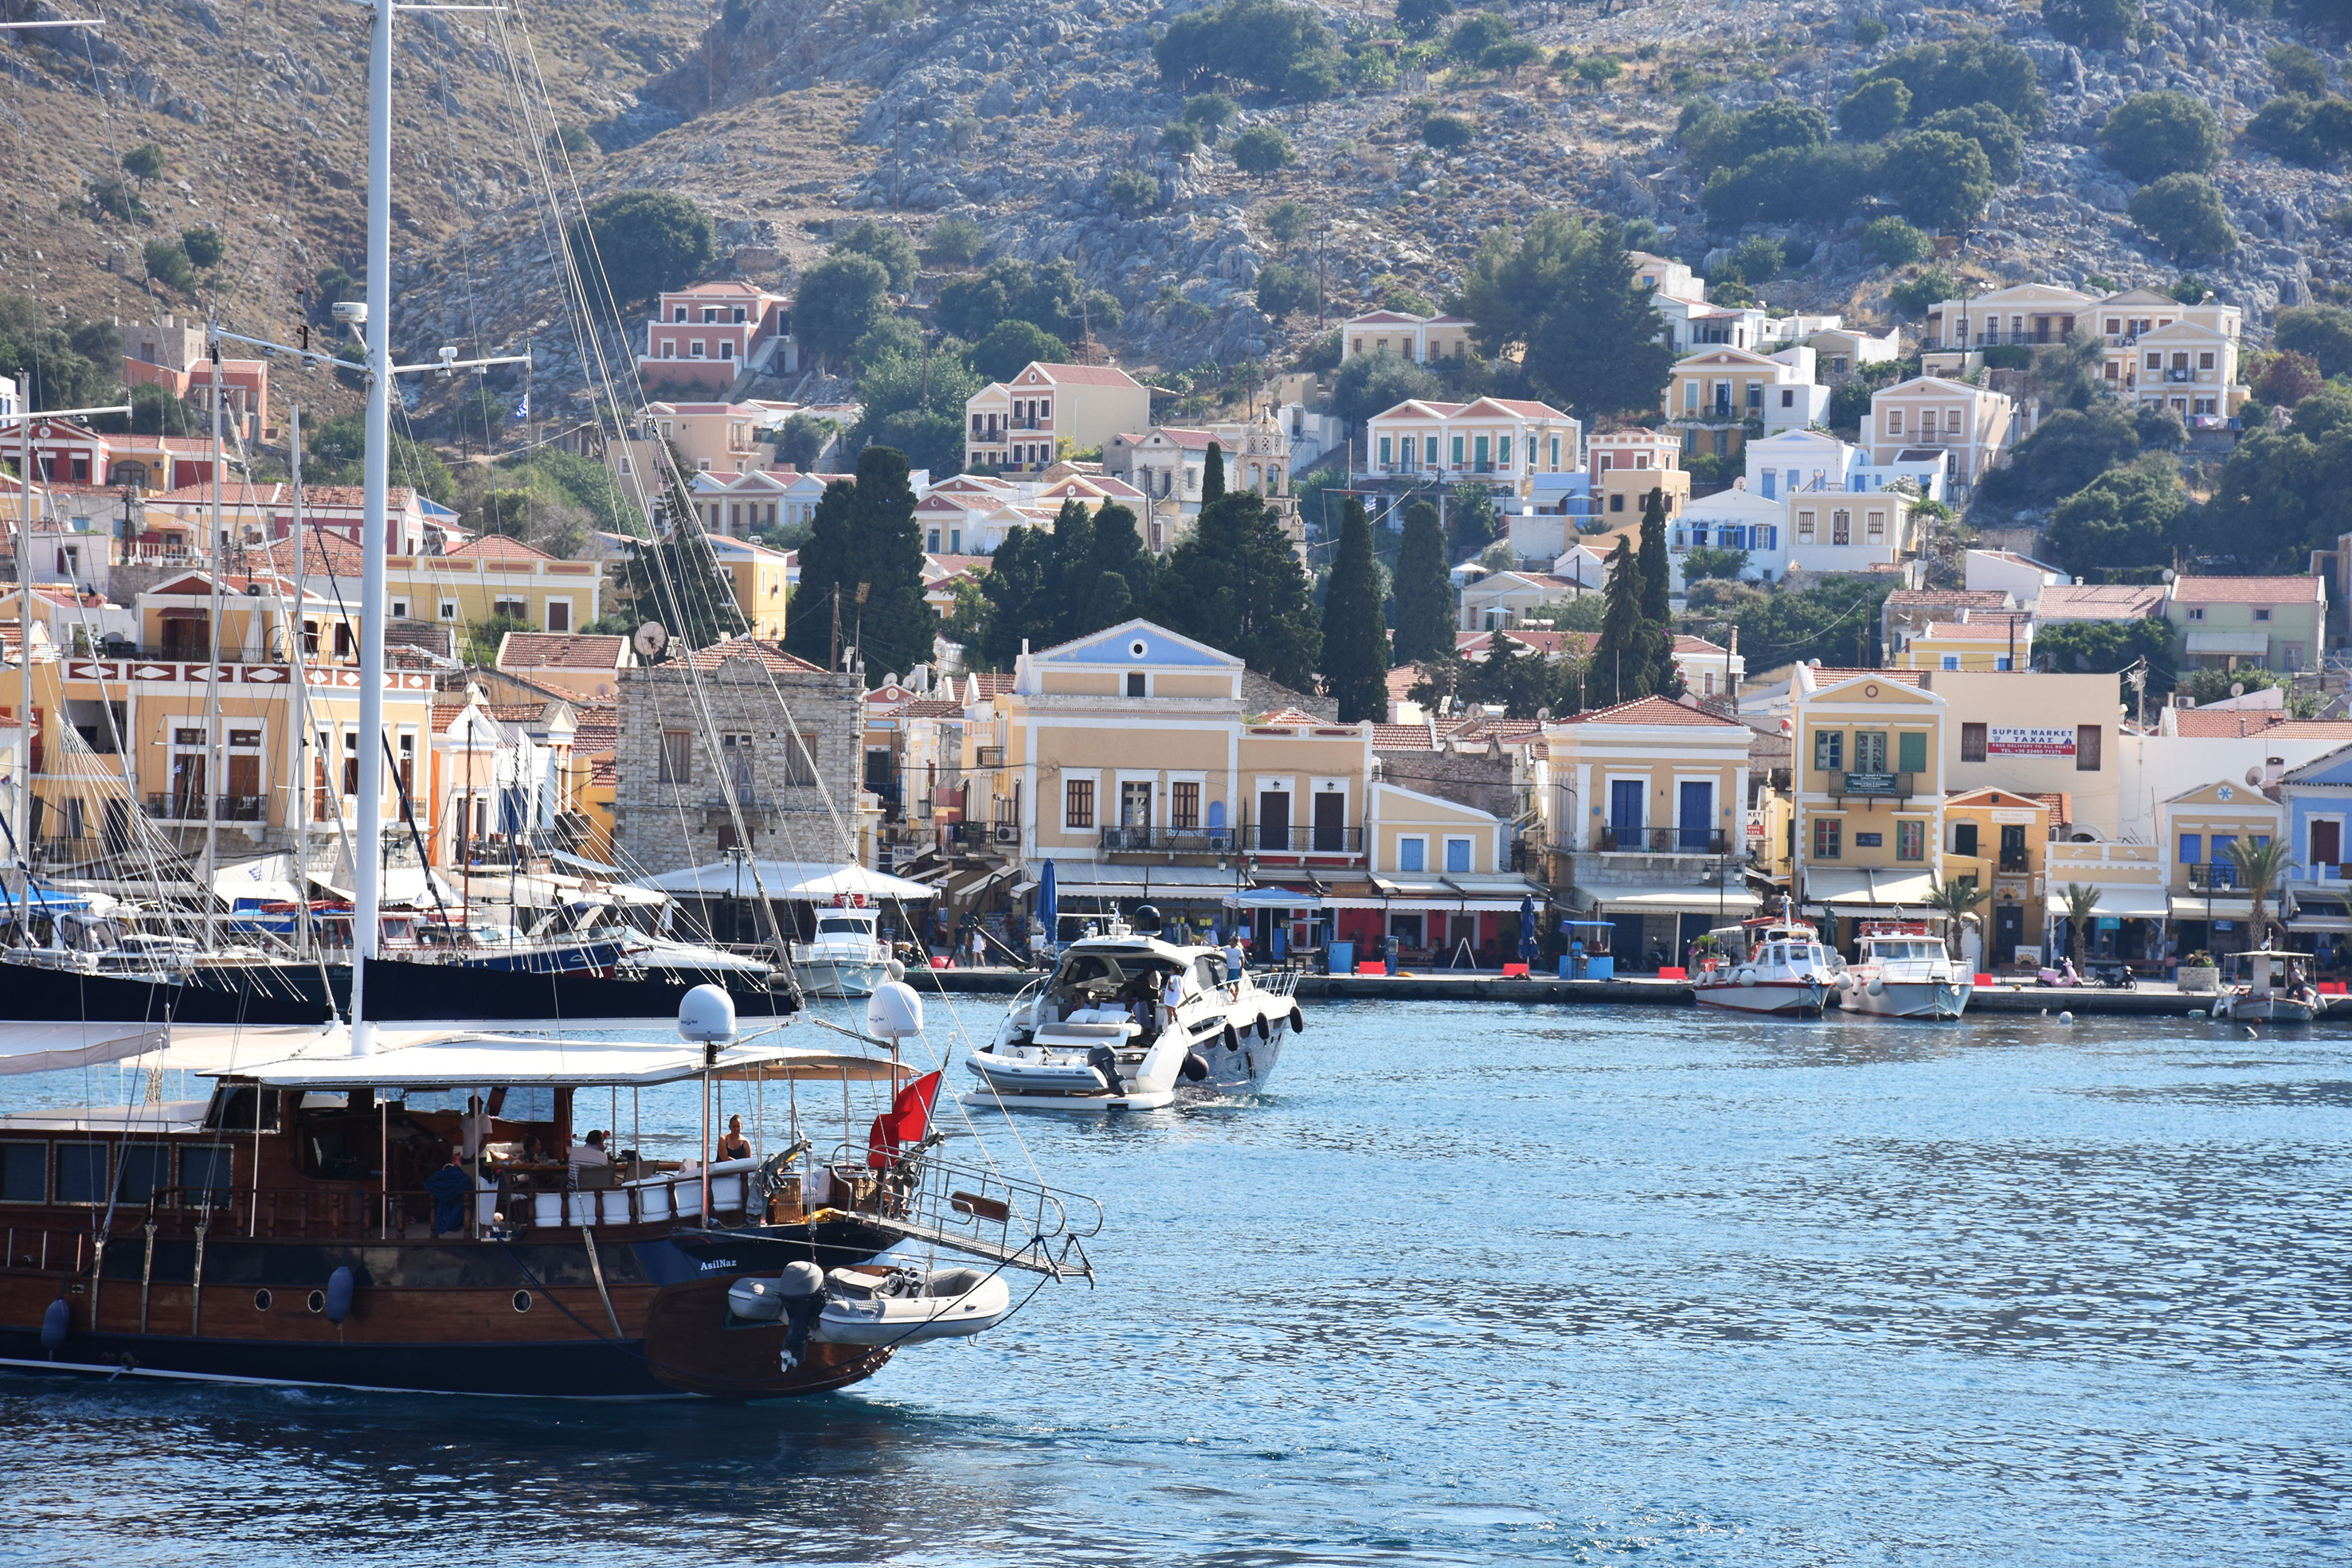 luxurious yachts in front of Symi's Greece traditional port